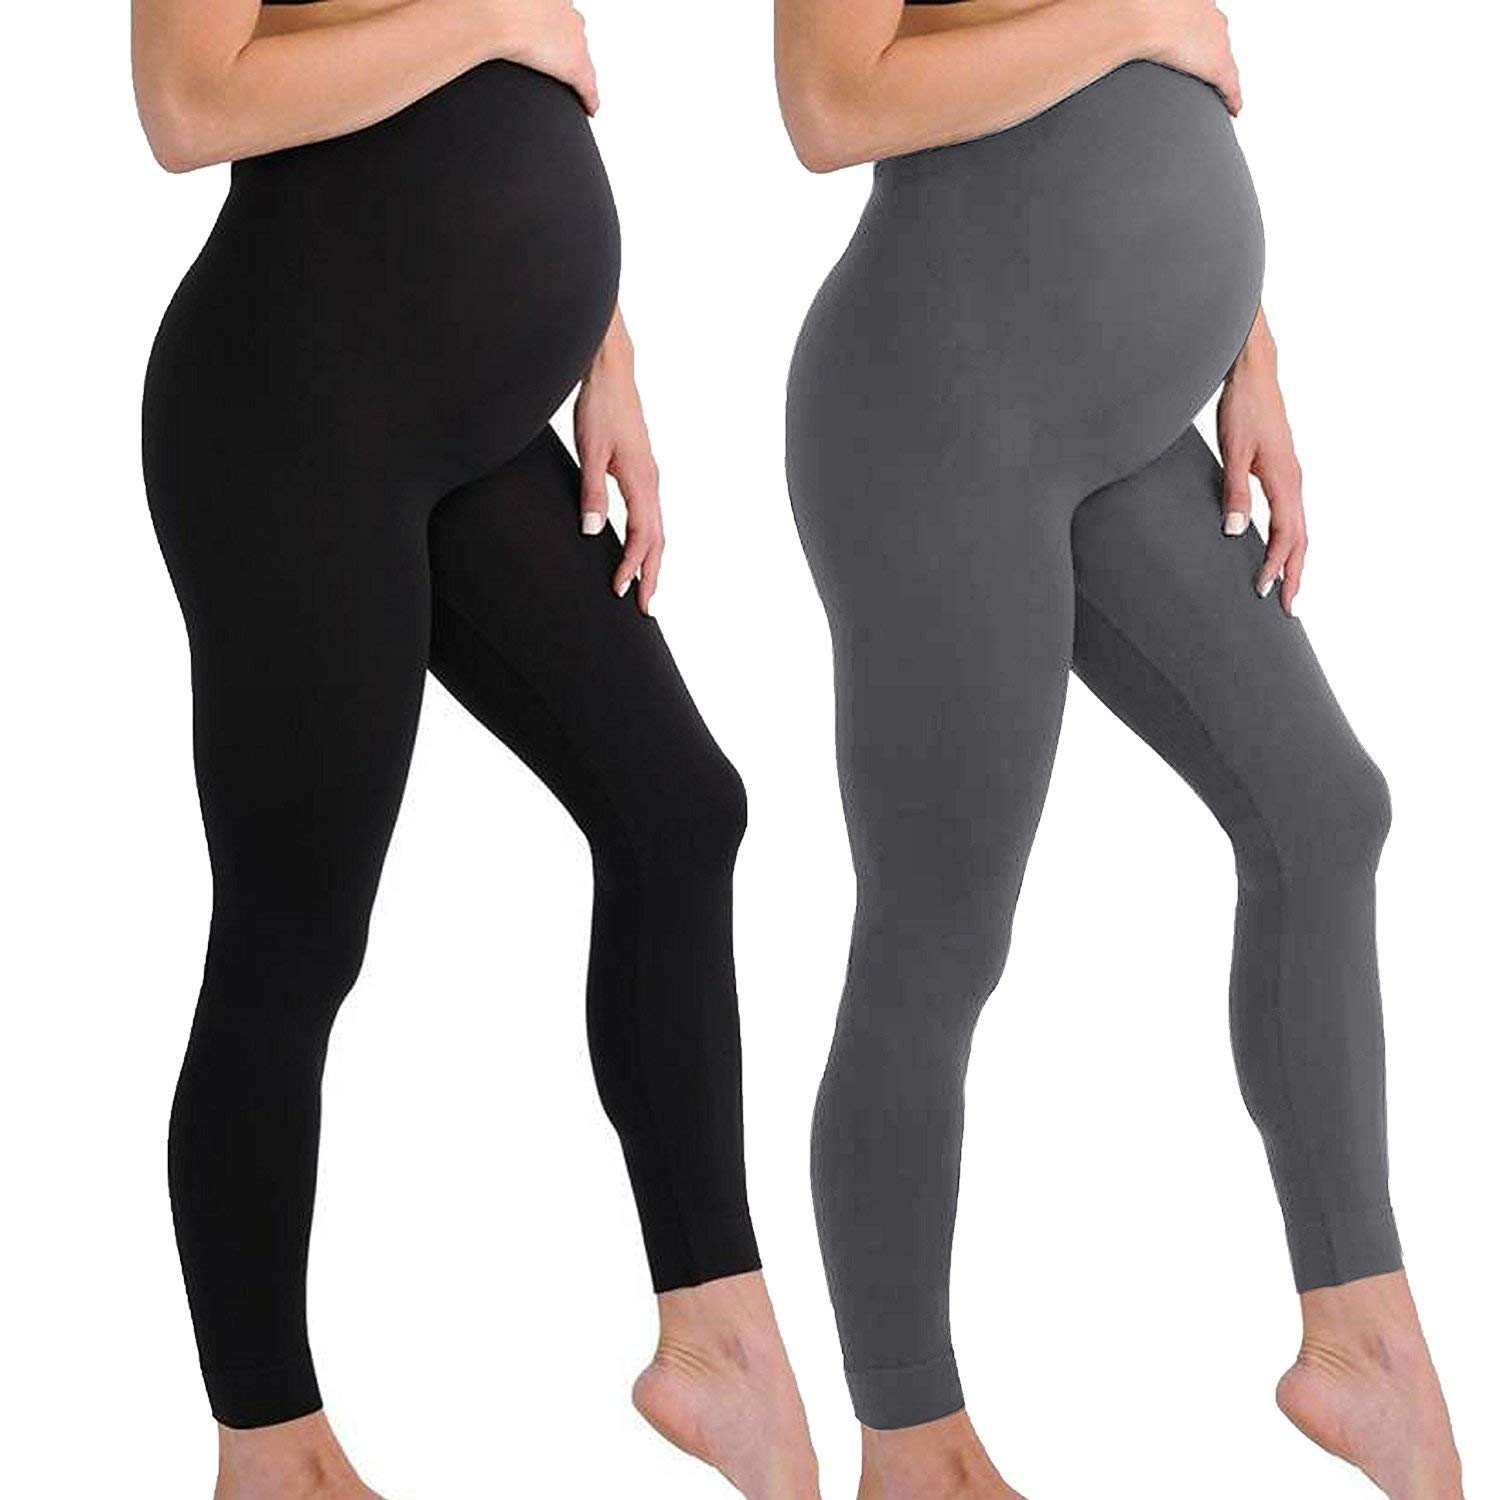 105d649d70994 Cheap Maternity Wear, find Maternity Wear deals on line at Alibaba.com